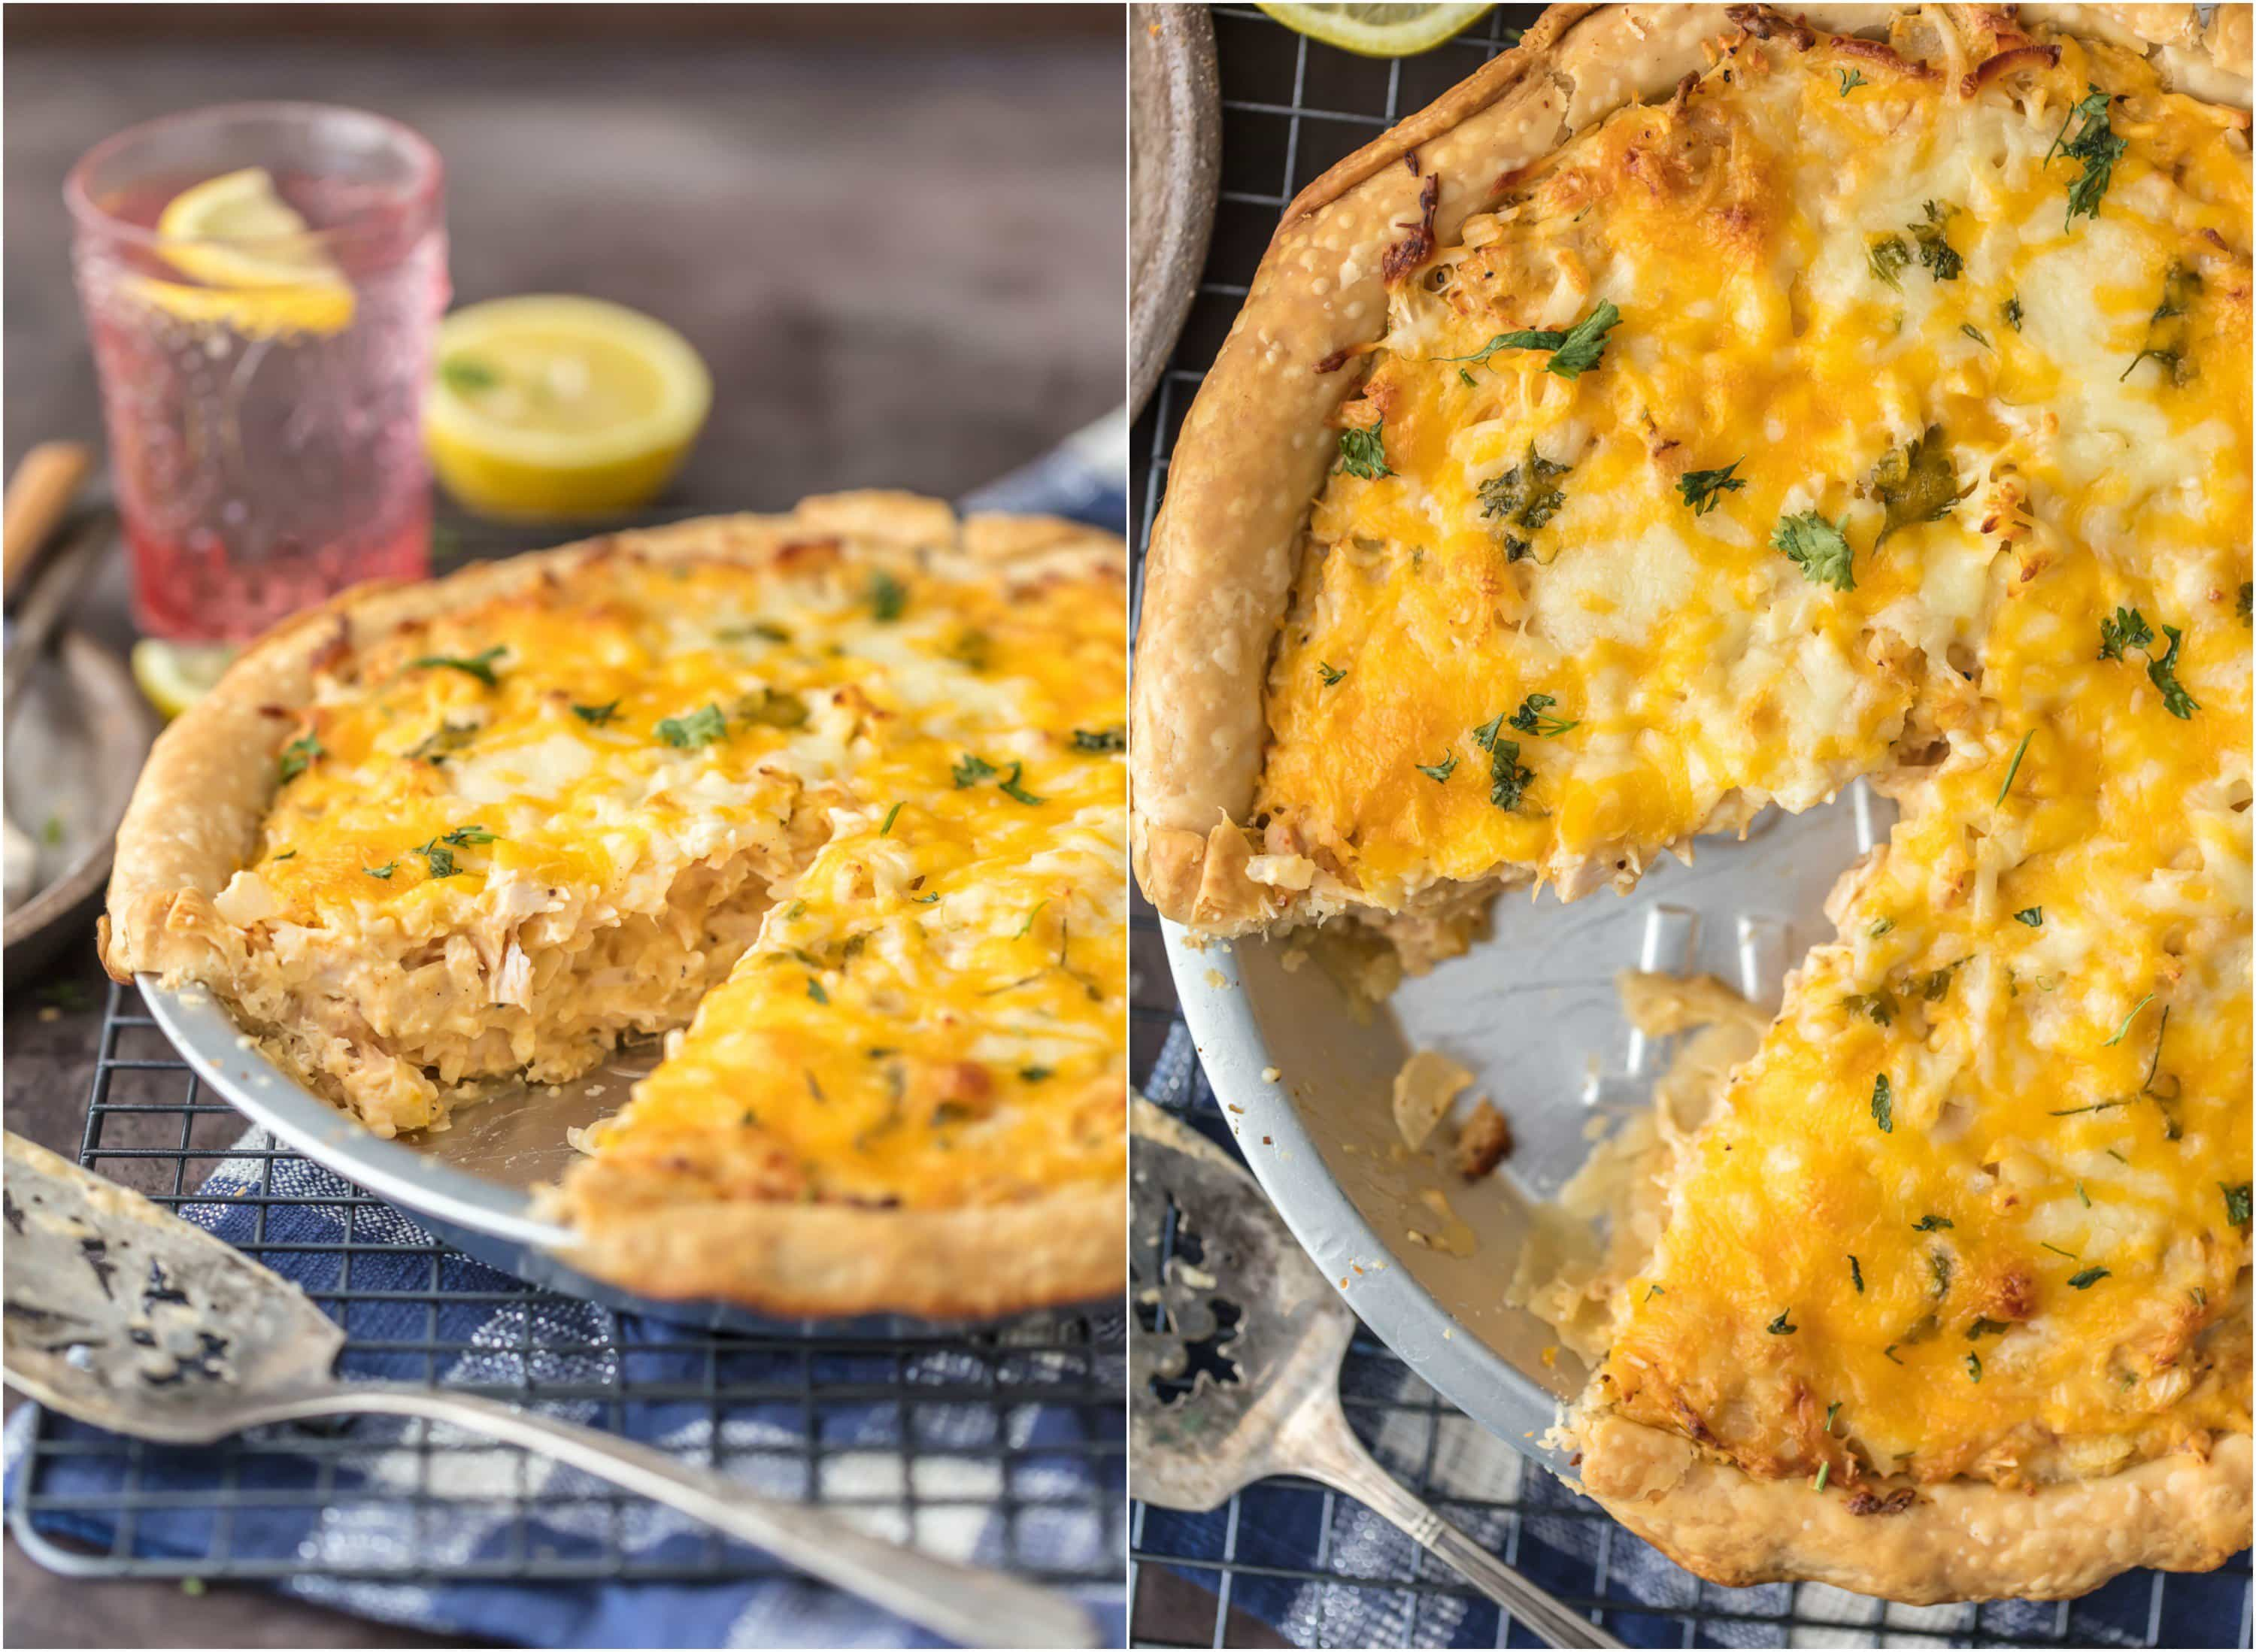 BAKED CHICKEN SALAD PIE is my absolute favorite comfort food recipe. Hot Chicken Salad baked into a flakey pie crust and covered with cheese...what could be better?! Our family LOVES this recipe!